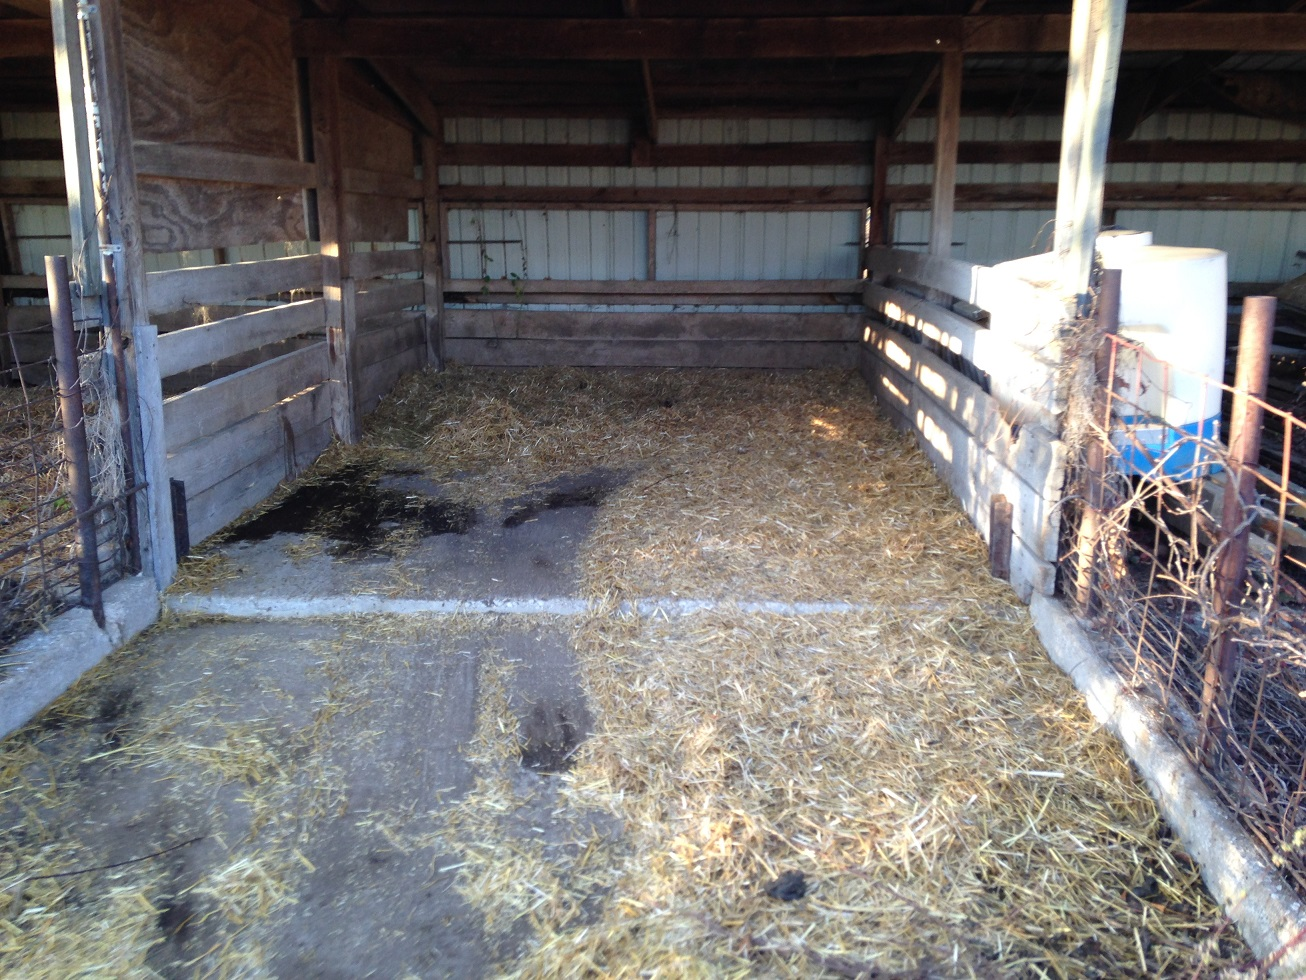 So We Move The Pigs To Their New Bay And Clean Old One Making A Compost Pile At Front Of Can Shovel It Out Easily Enough